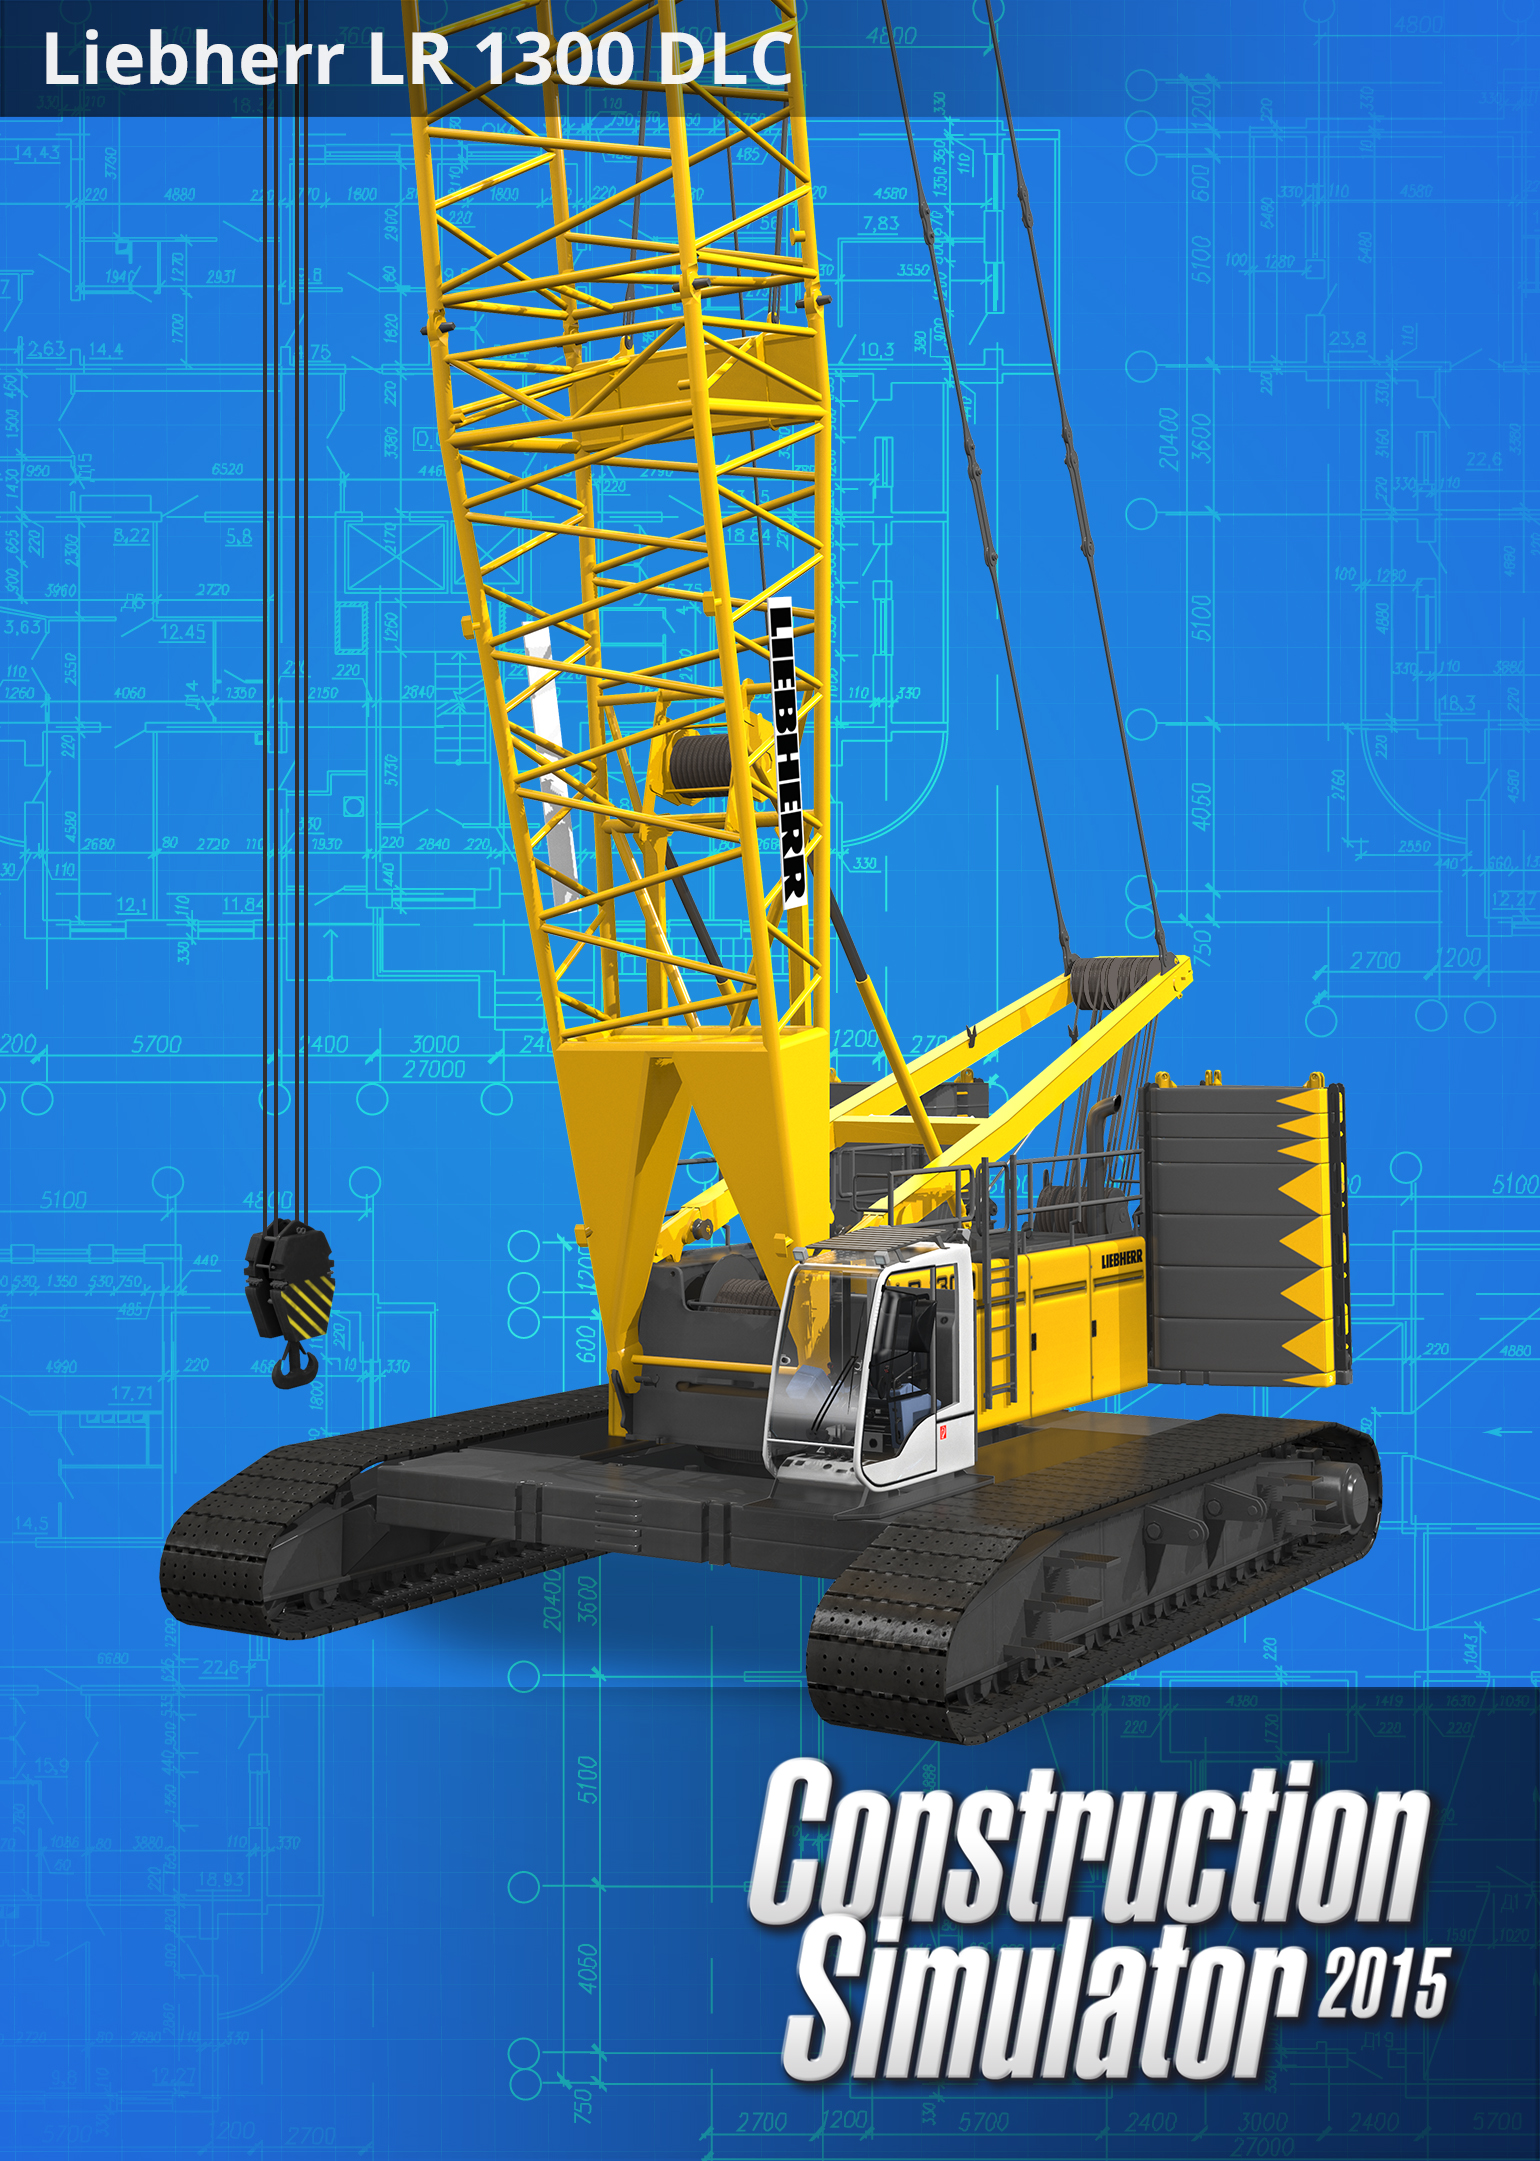 construction-simulator-2015-liebherr-lr1300-online-game-code